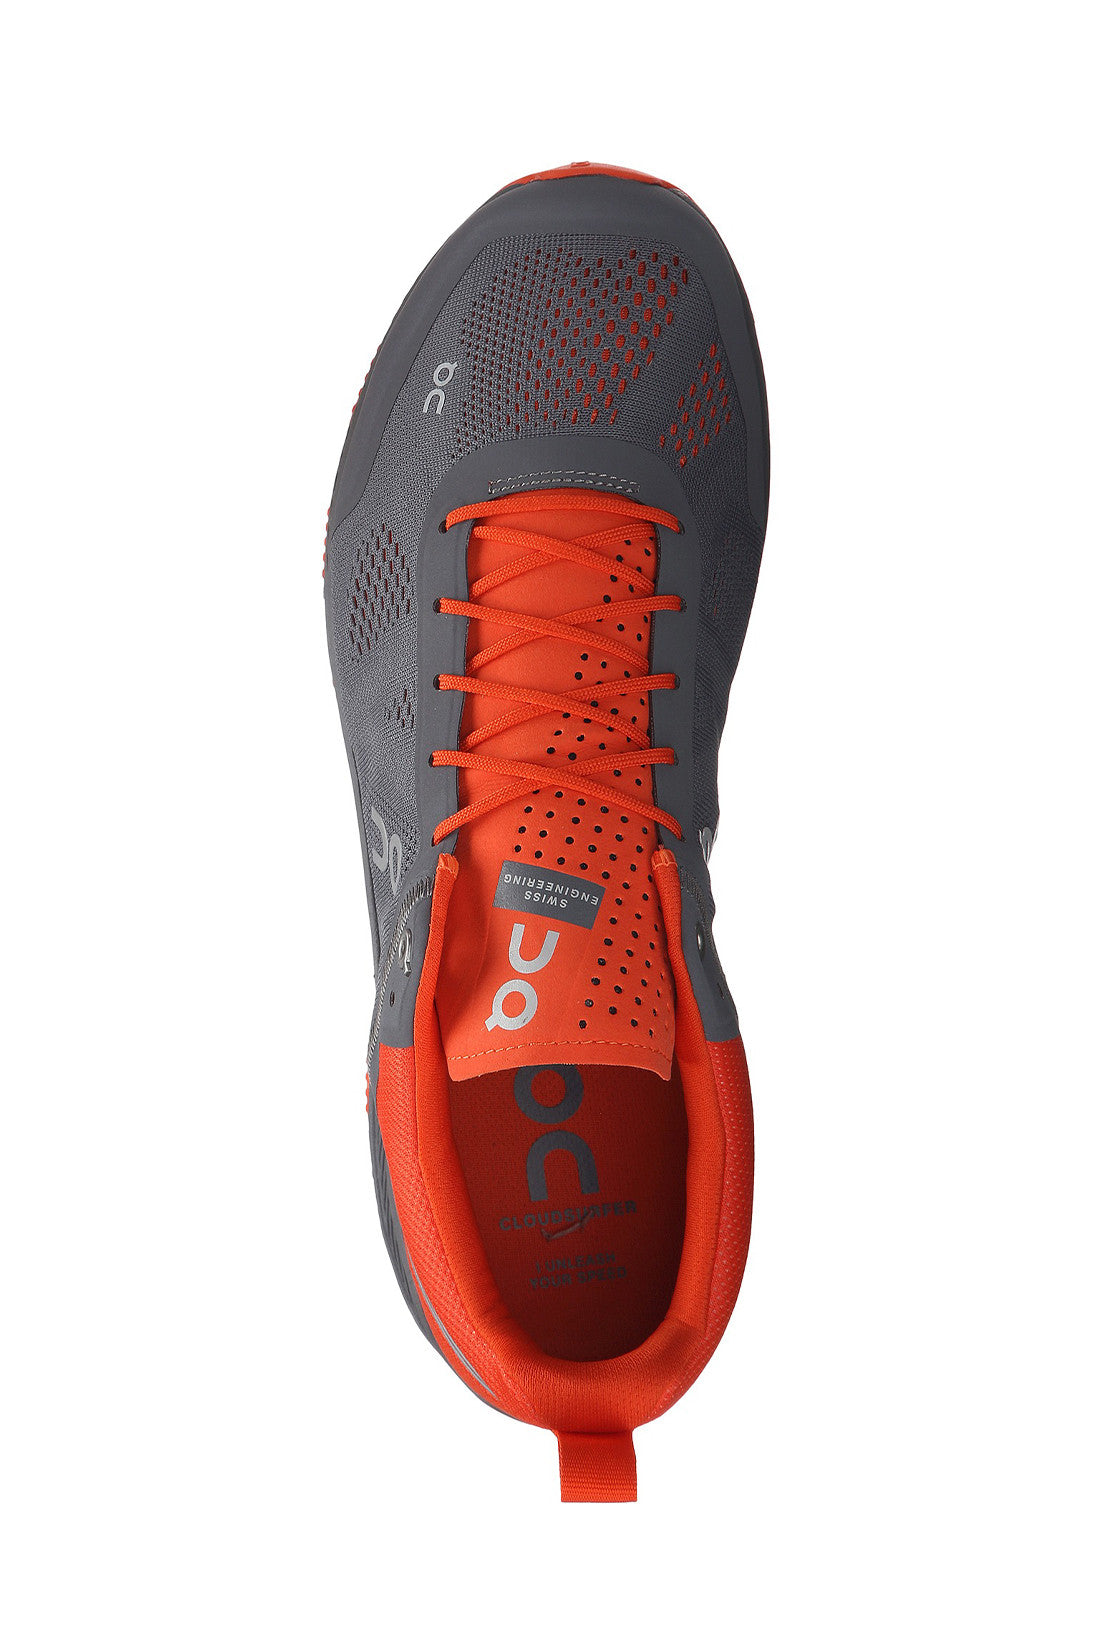 Support, fast, breathable, swiss engineering, running, ultra light, Men's ON Cloudsurfer - Rock Orange